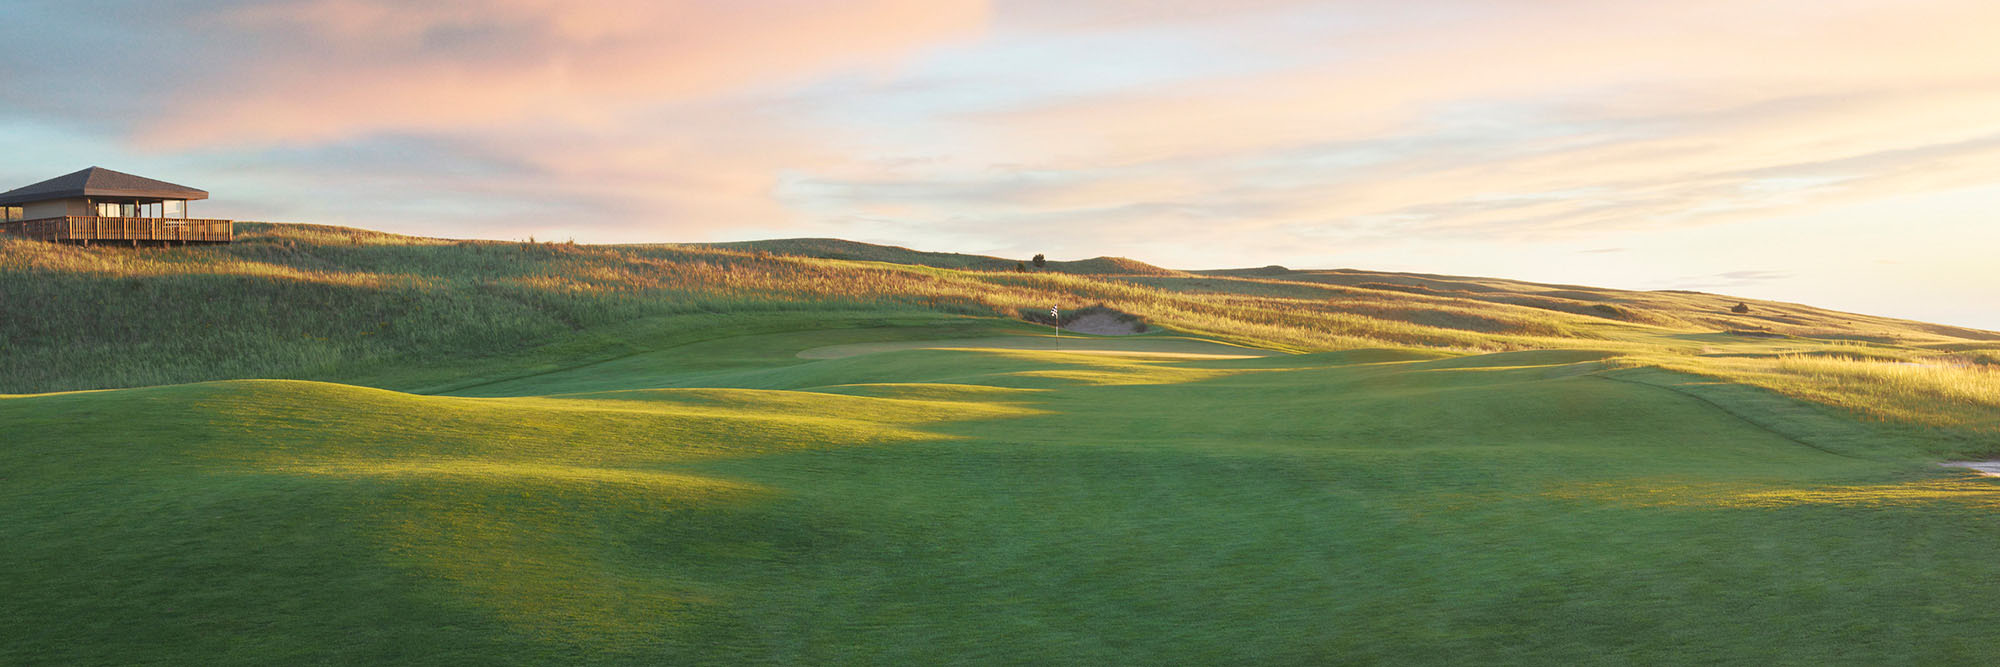 Golf Course Image - Sand Hills No. 9